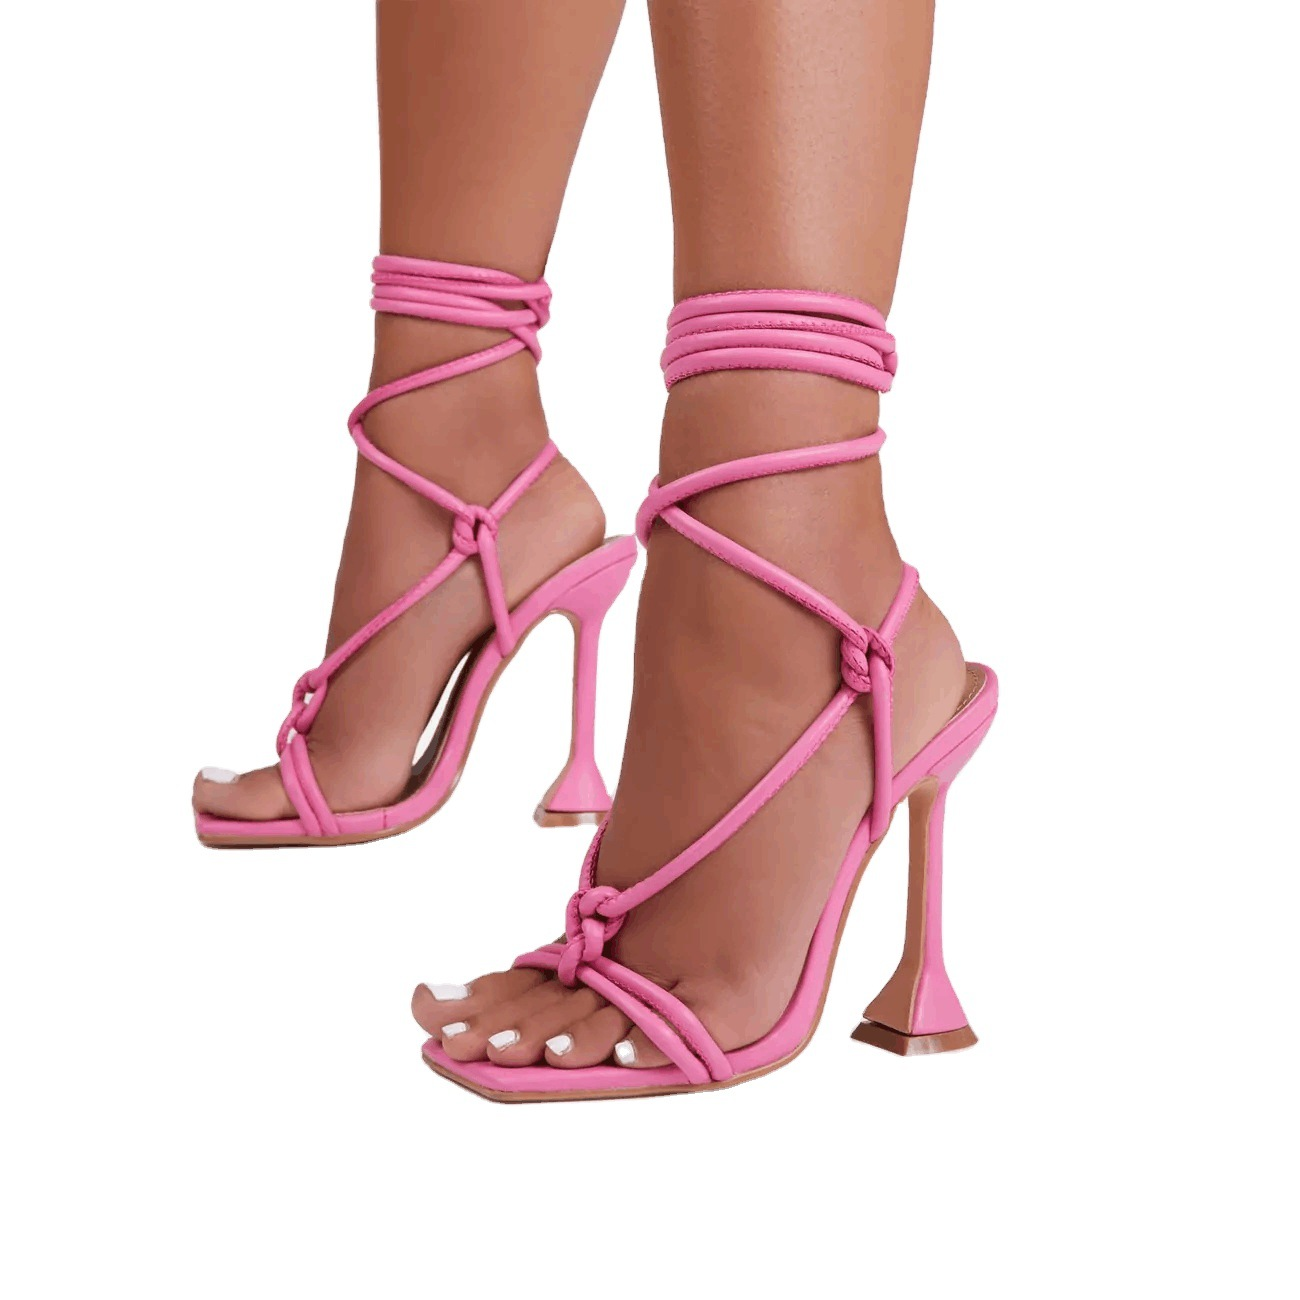 Sandalias Con Tacon Square Toe Pink Nude Lace up 2021 Heels for Women, Rosy pink, nude, black